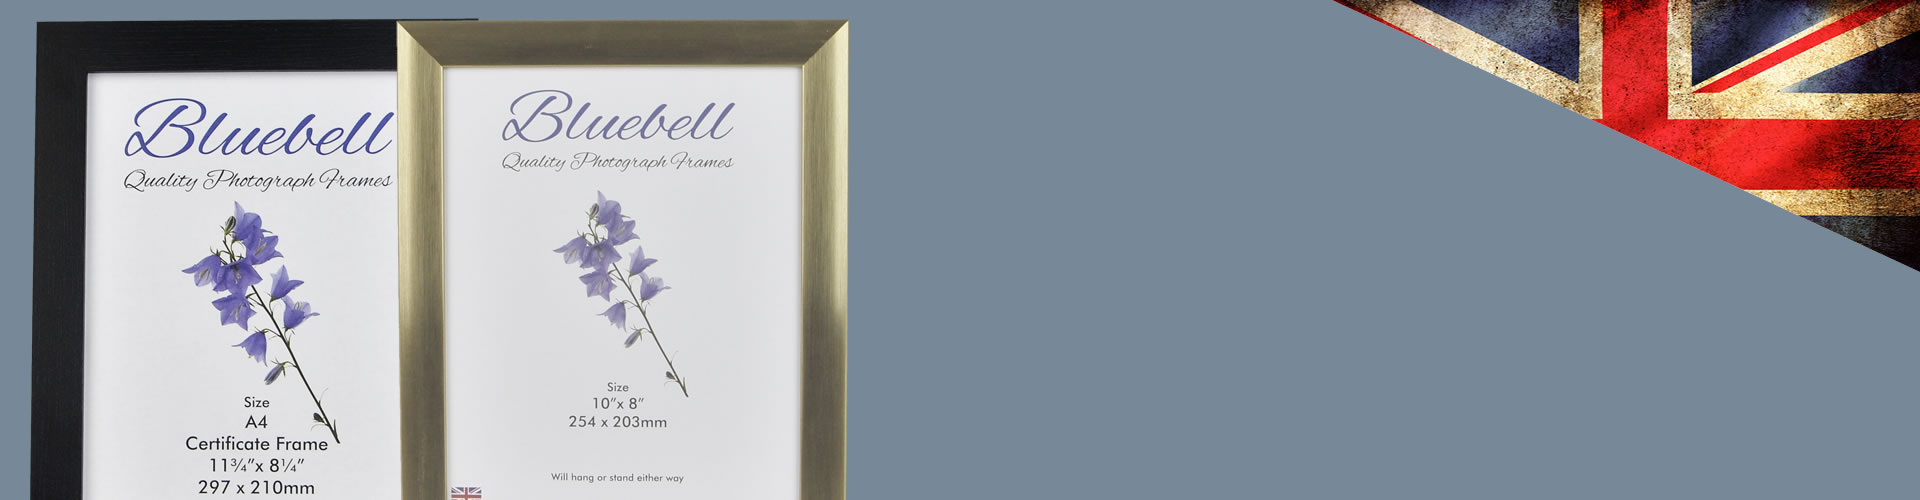 Wholesale & Bulk Trade Picture Frames Direct From The UK